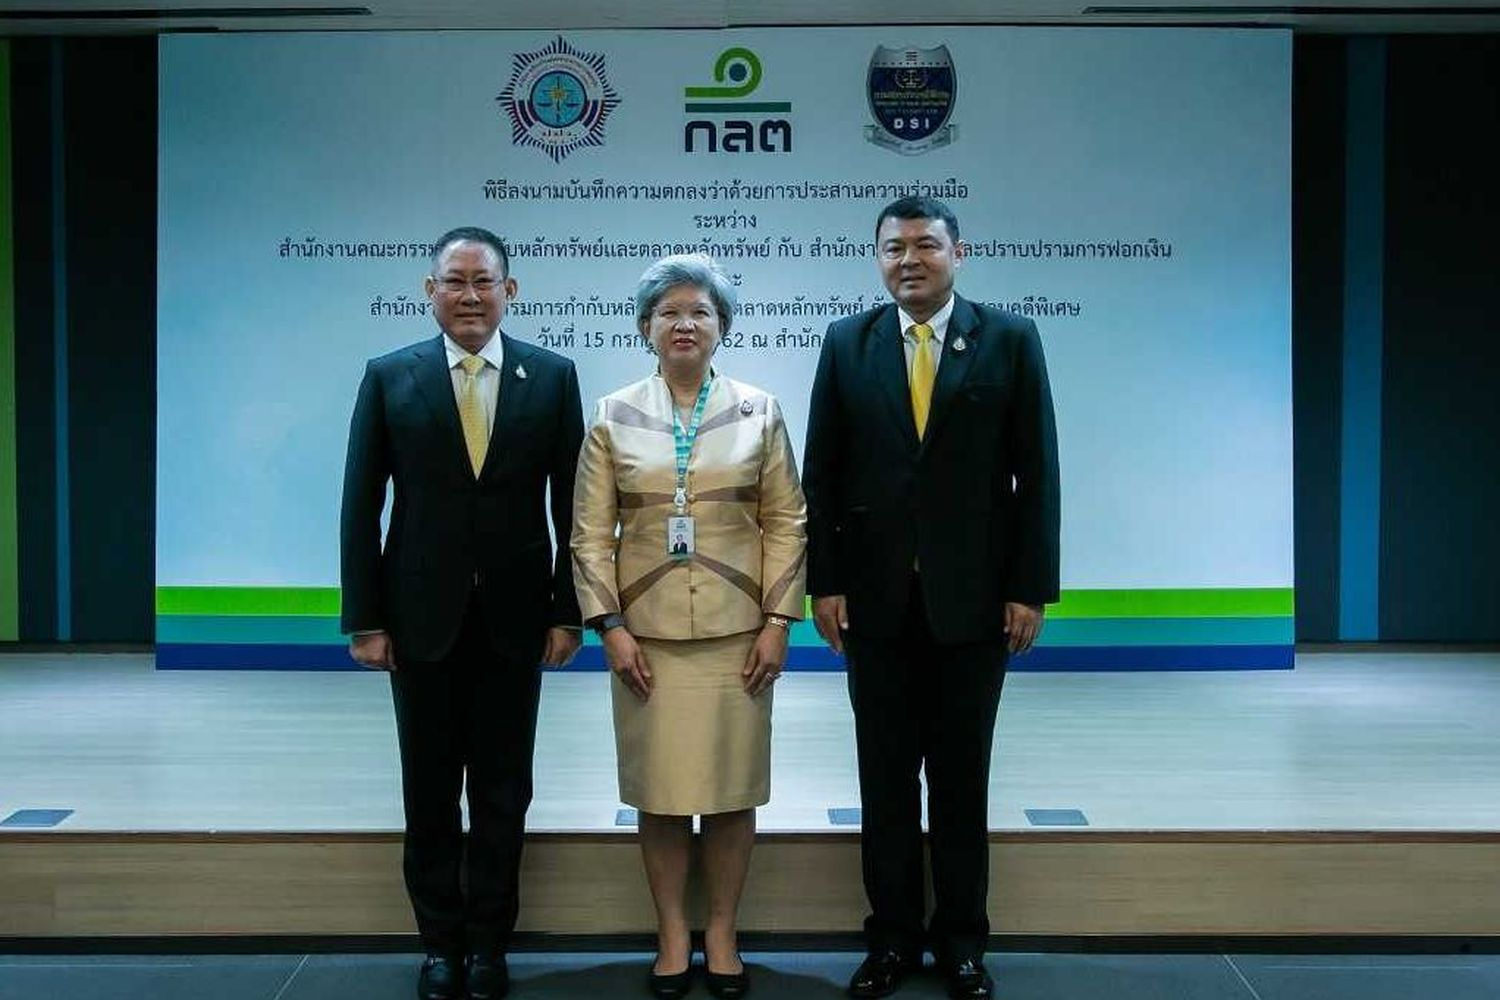 (From left) Pol Maj Gen Preecha Jaroensahayanon, deputy secretary-general and acting secretary-general of Amlo, Ruenvadee Suwanmongkol, acting secretary-general of SEC, and Pol Col Paisit Wongmuang, director-general of DSI, pose for a photo after signing a memorandum of understanding on the new reporting rule. (Photo supplied by Securities and Exchange Commission)